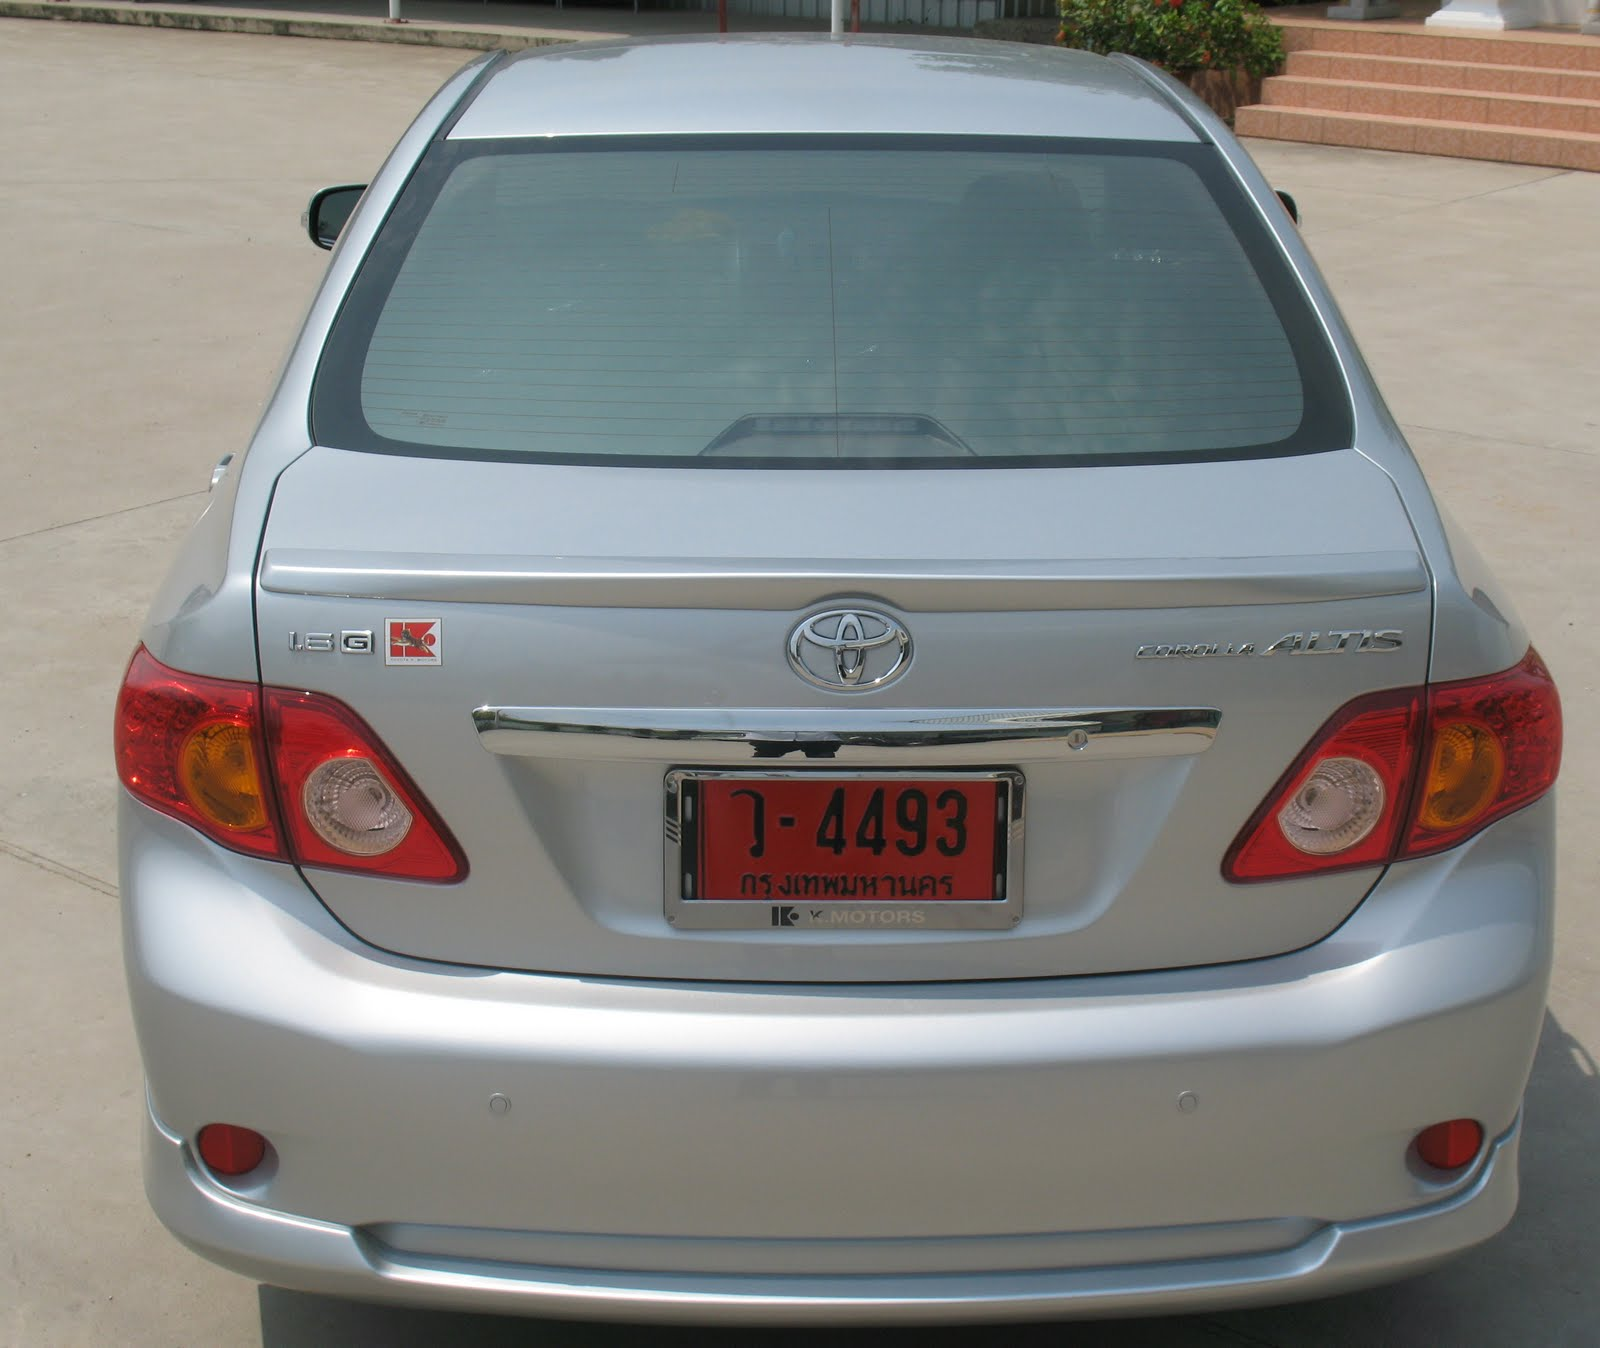 Toyota New Parts Online: Tuning Toyota Corolla 2012 Online, Accessories And Spare